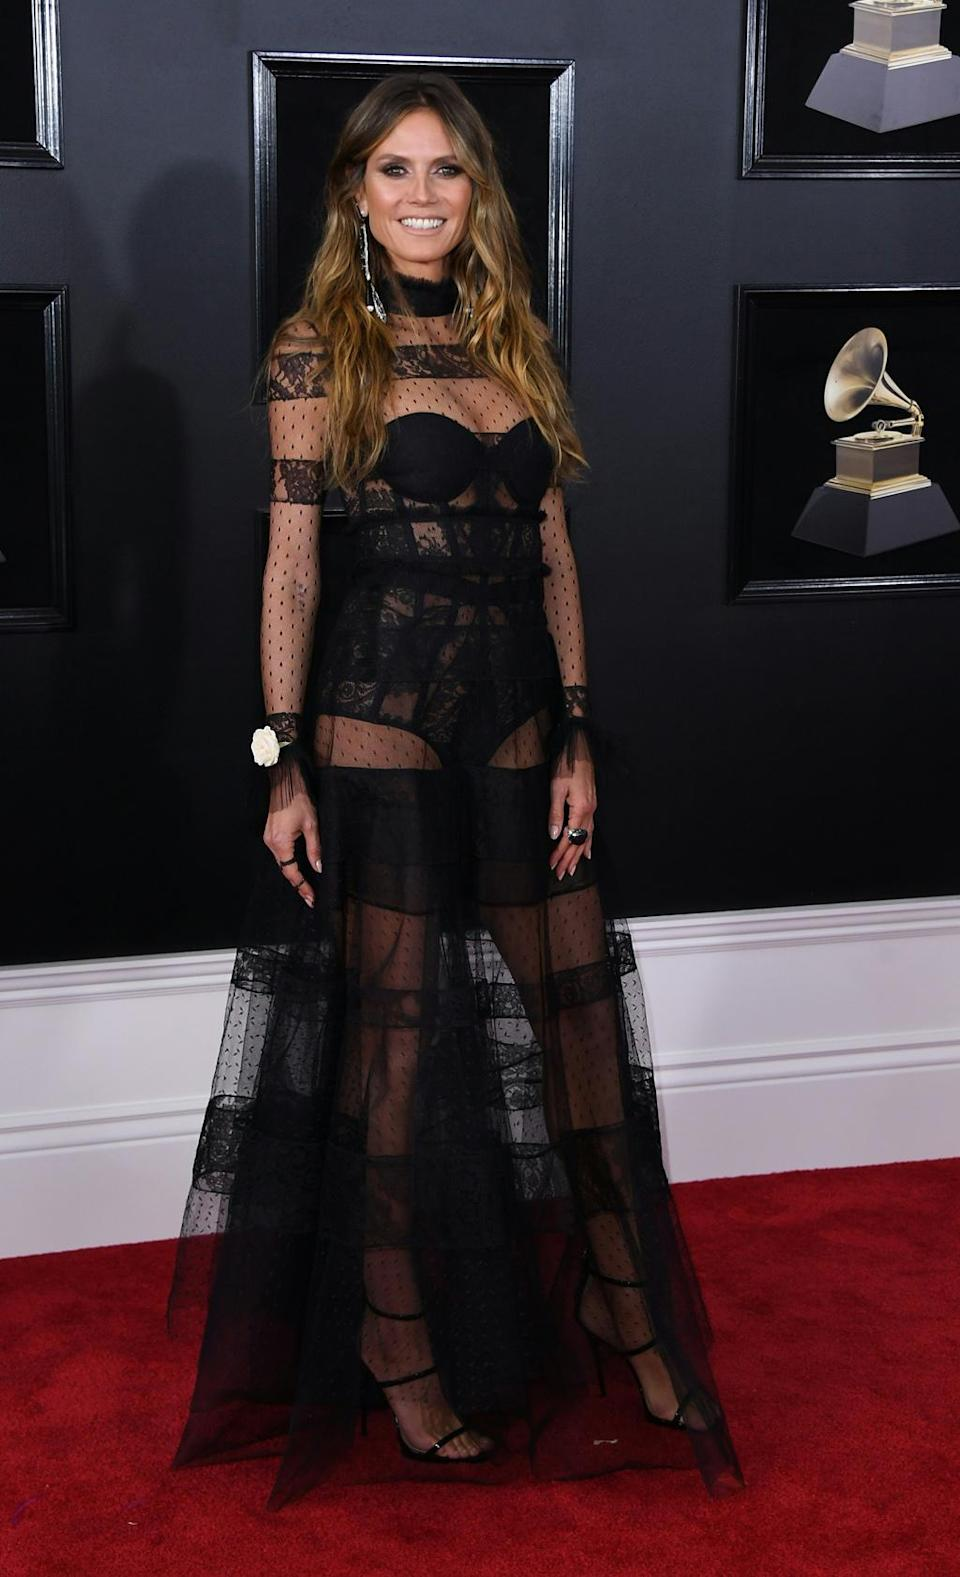 Glamorous and sexy, Heidi Klum opted for a see-through lace ensemble by Ashi Studio. New York, January 28, 2018.